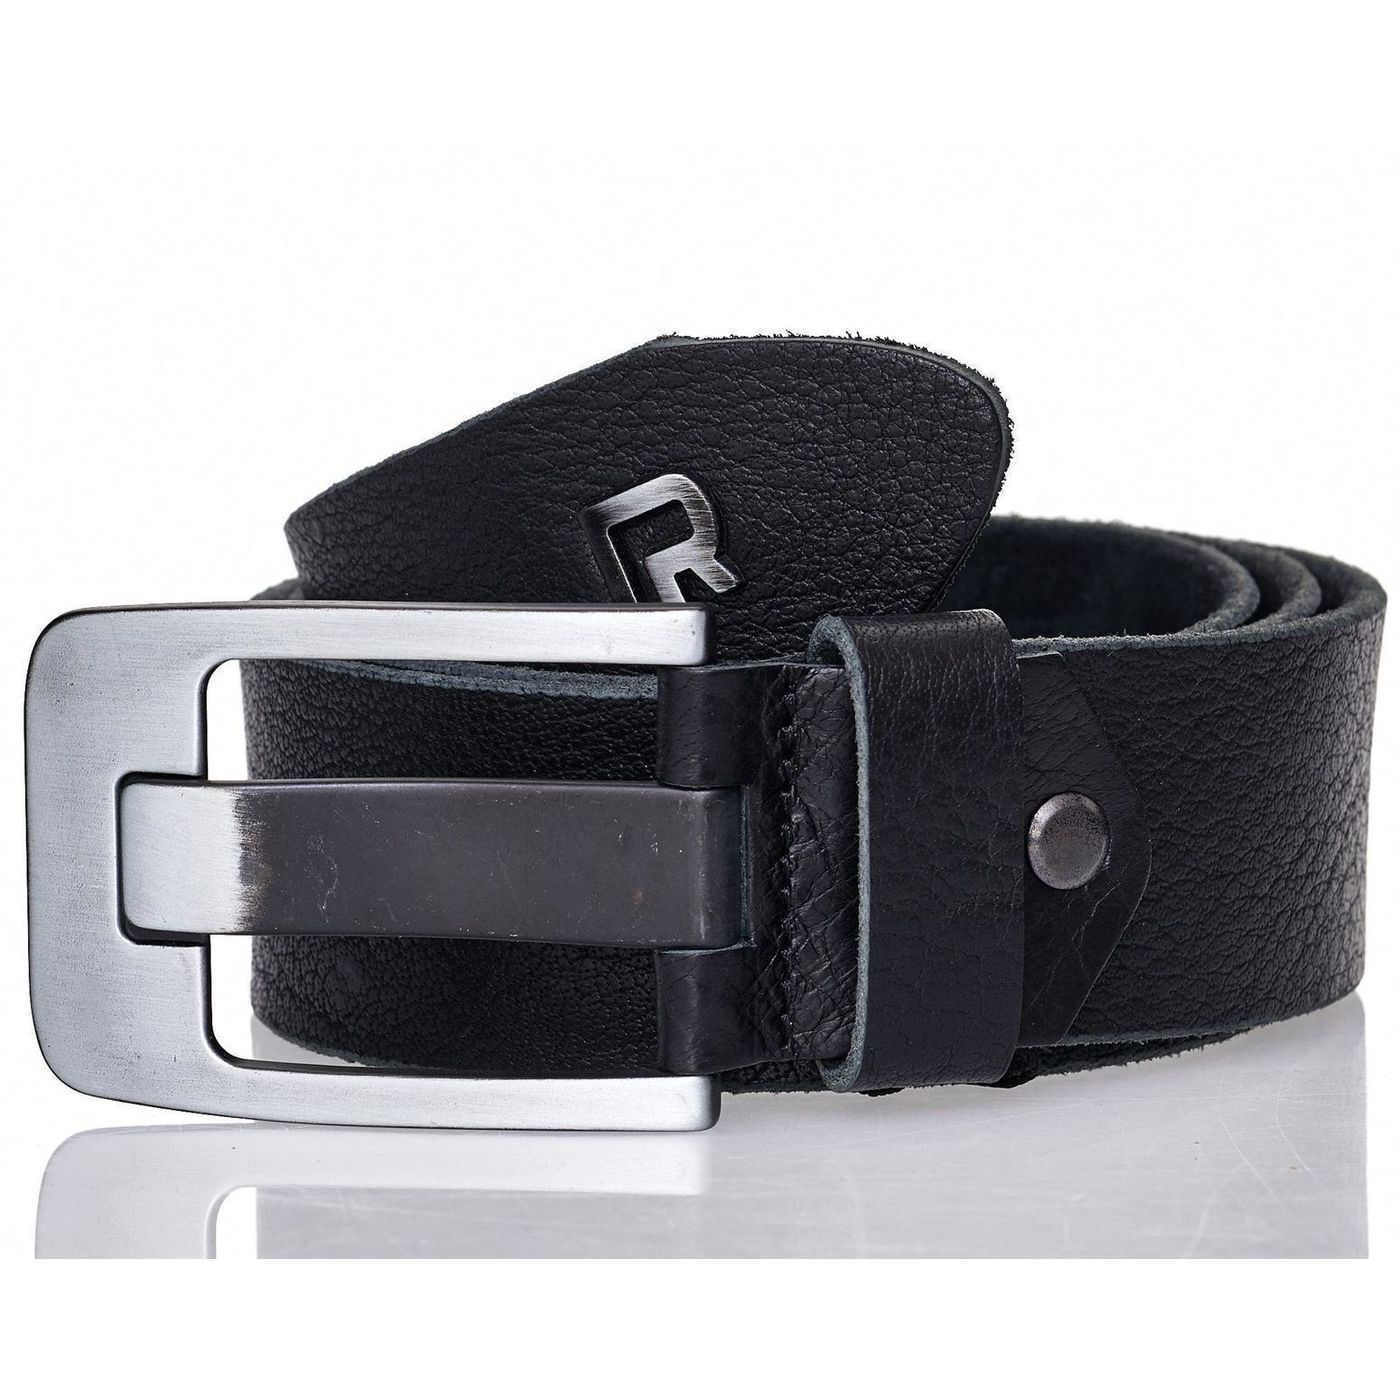 0b646500eca1e4 Red Bridge Herren Gürtel Ledergürtel Echtleder Leather Belt RBC Premium  Schwarz-1